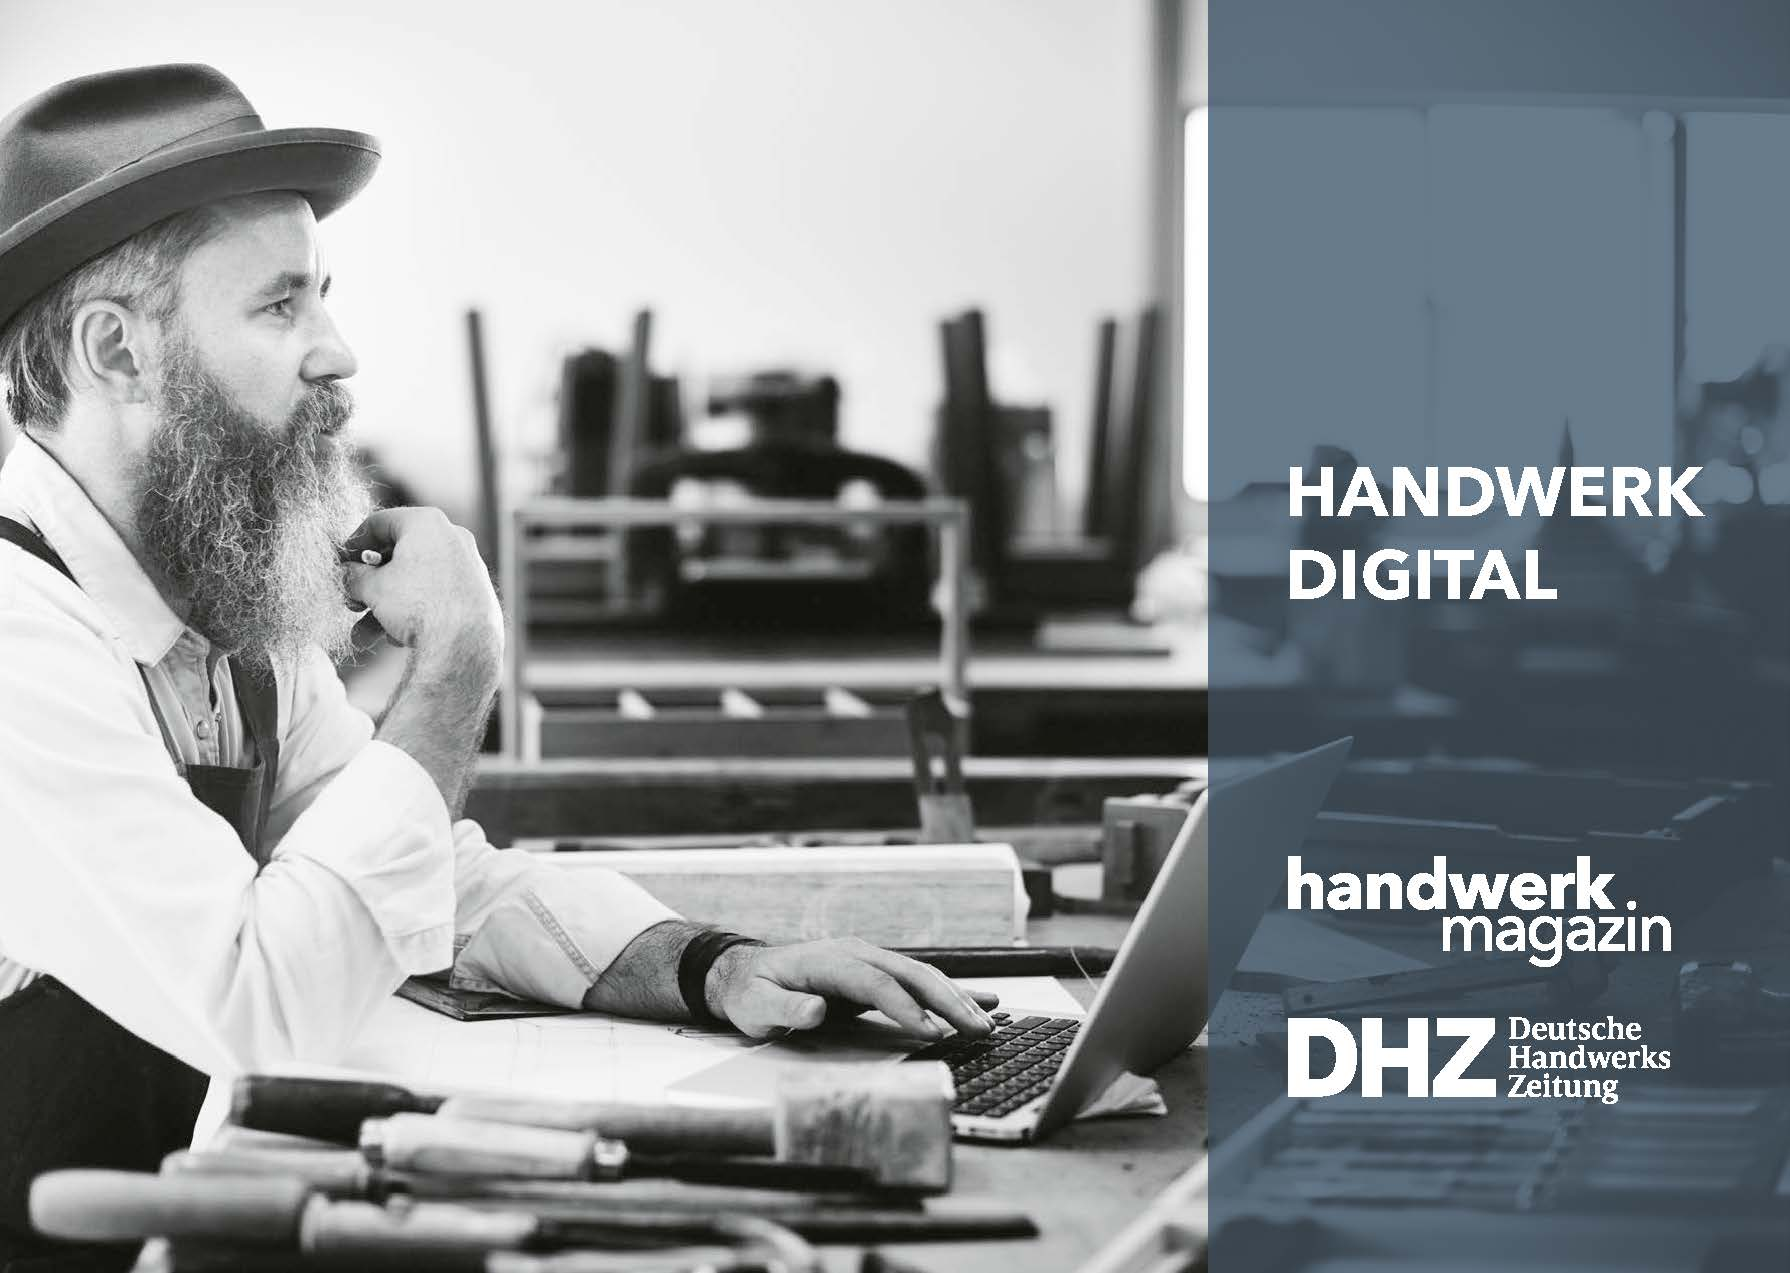 handwerk magazin digital